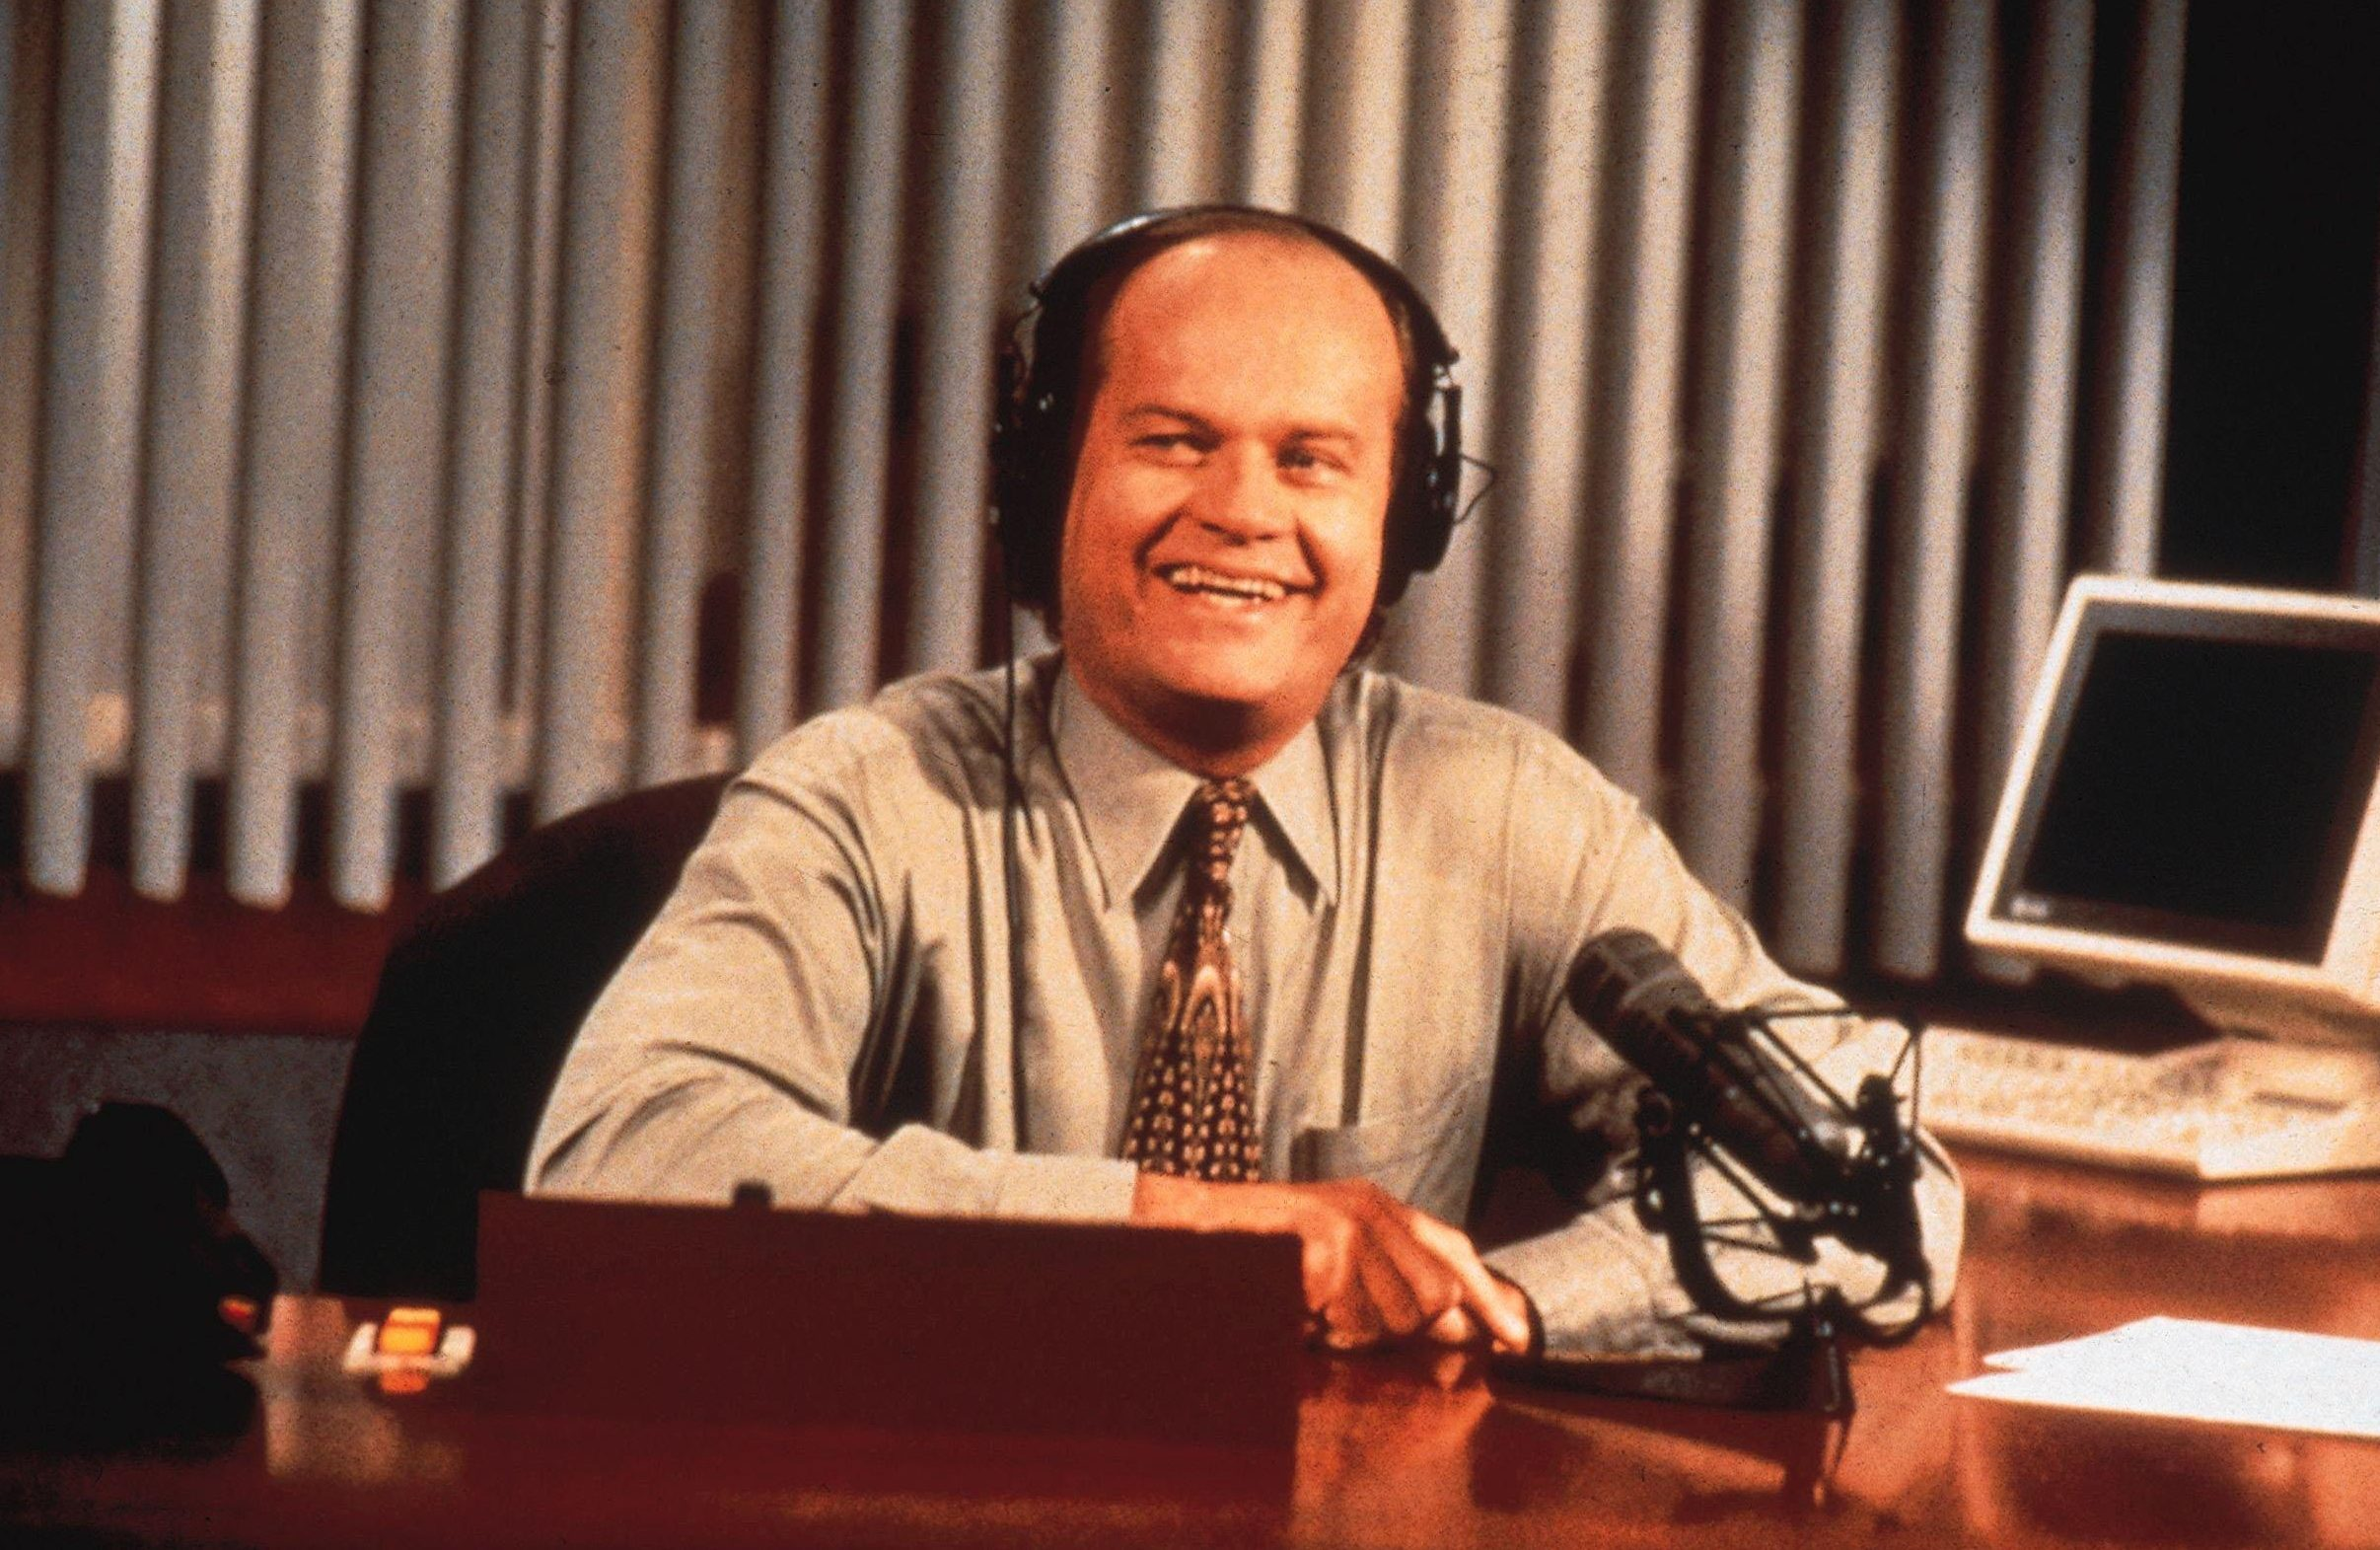 Hit sitcom Frasier could be set for TV return with Kelsey Grammer back in lead role